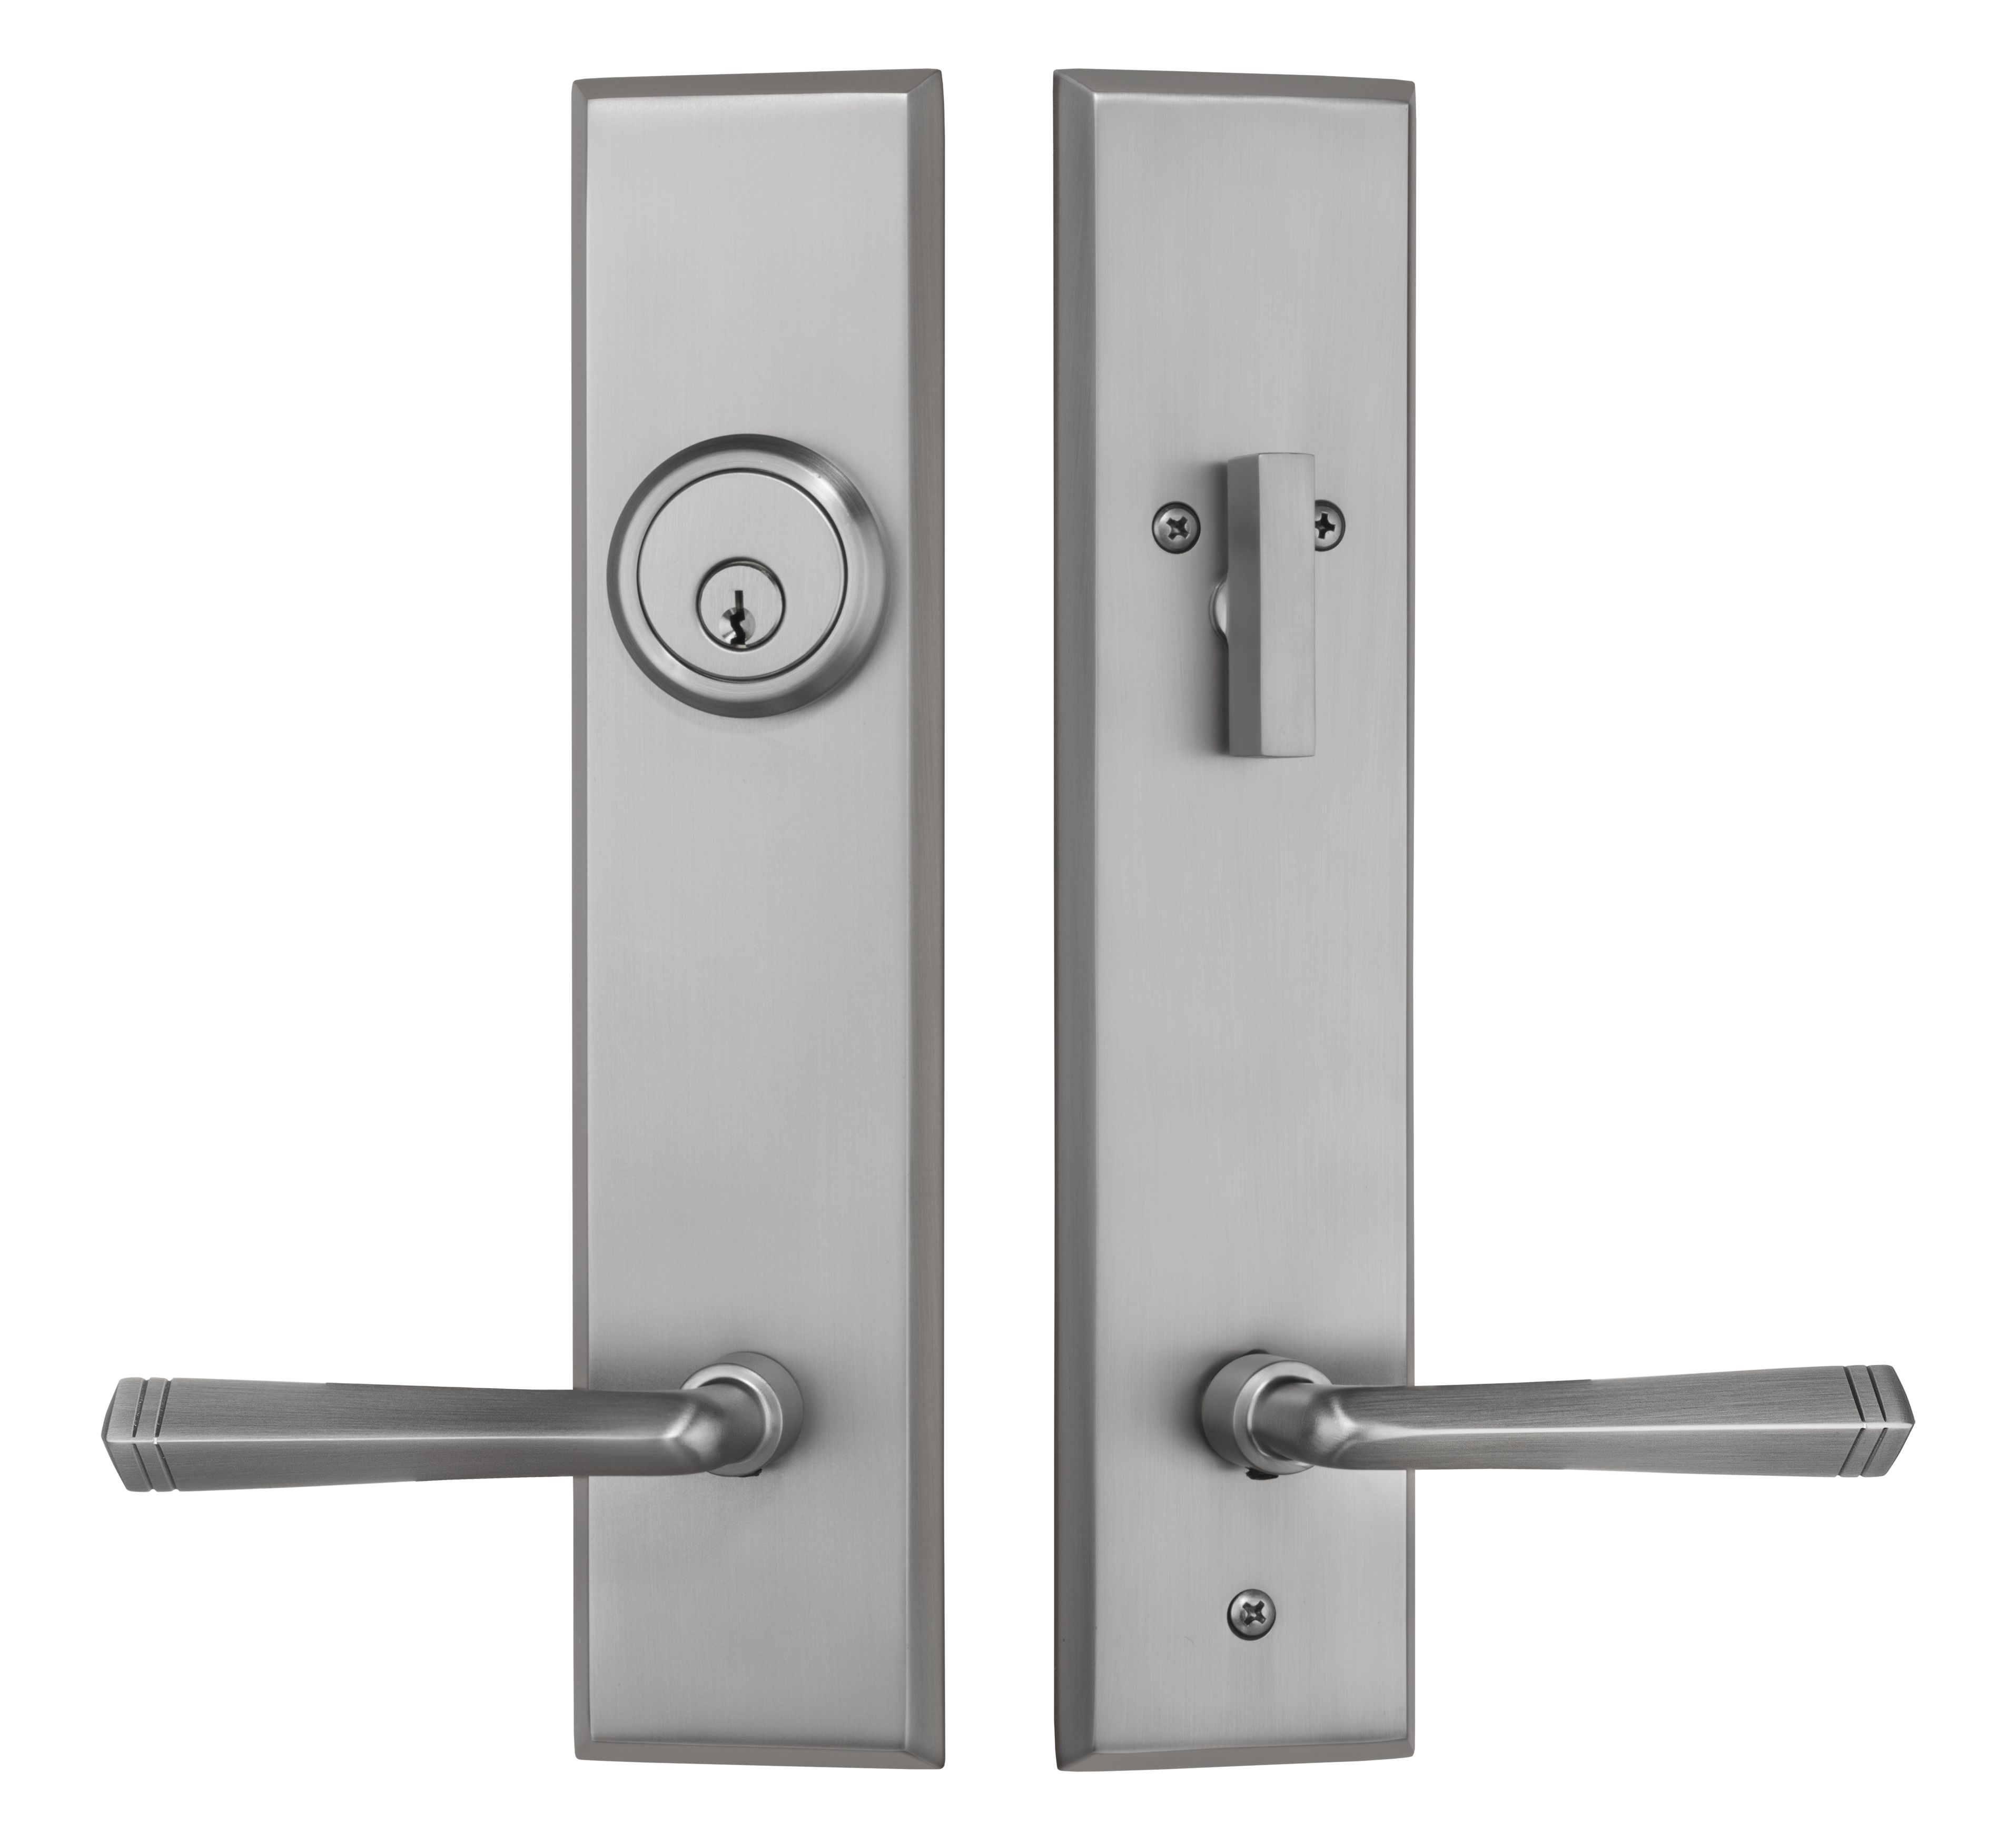 front door hardware brushed nickel. Rockwell Verano Entry Door Lock Handleset With Quattro Lever In Brushed Nickel Finish Front Hardware L